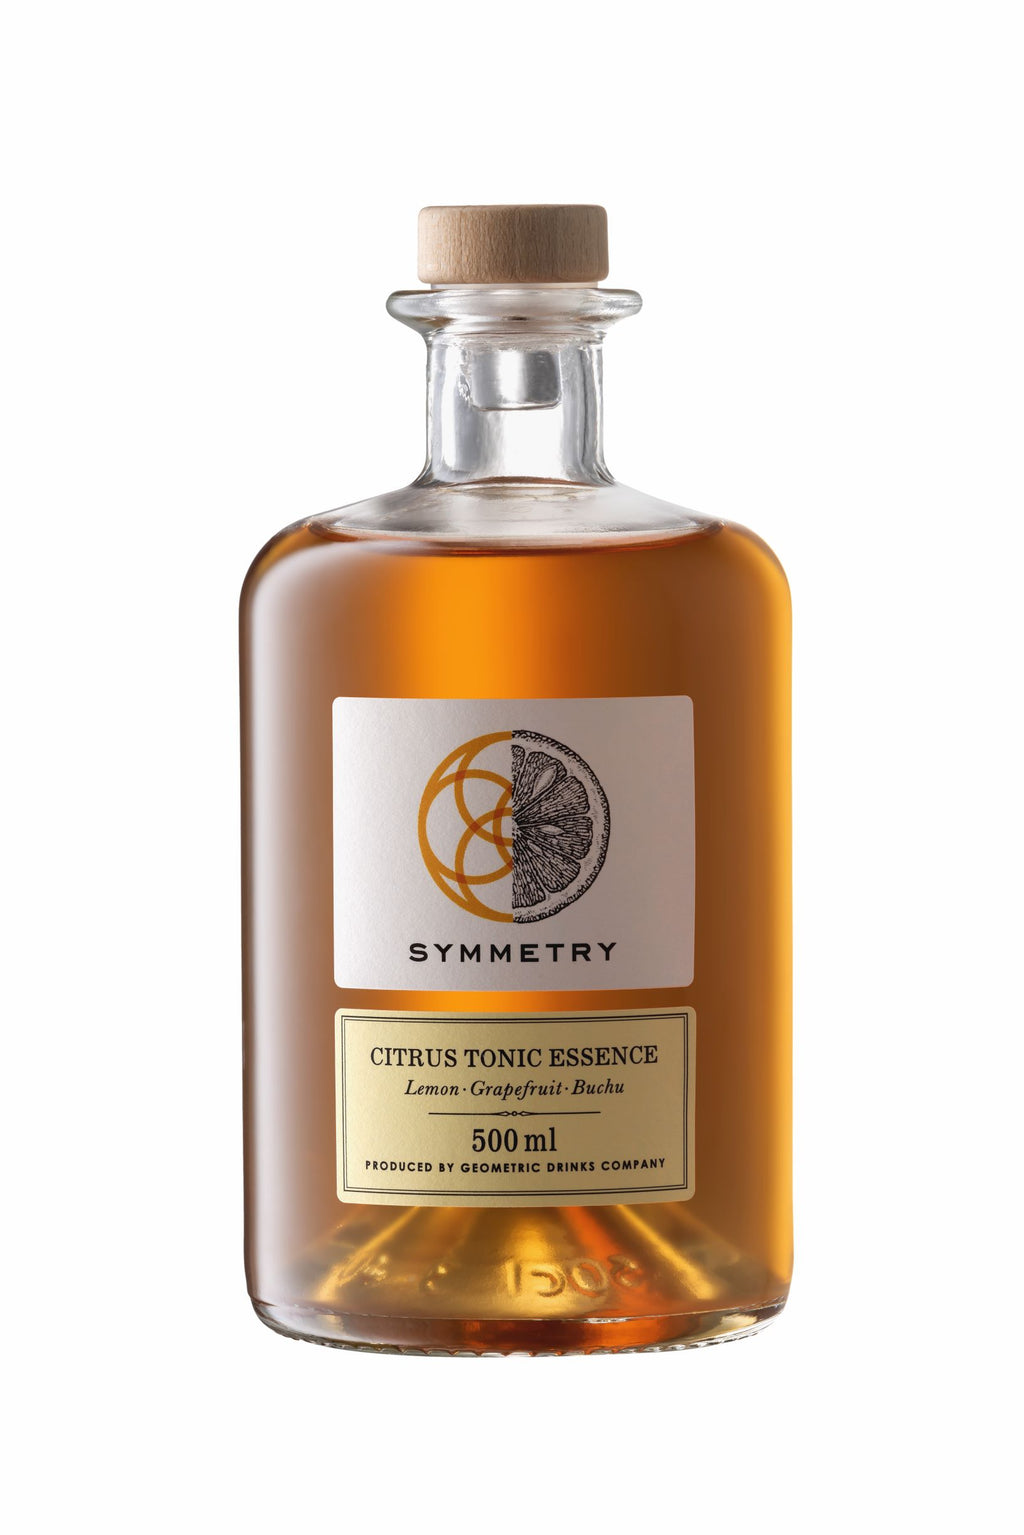 Symmetry Citrus Tonic essence 500ml